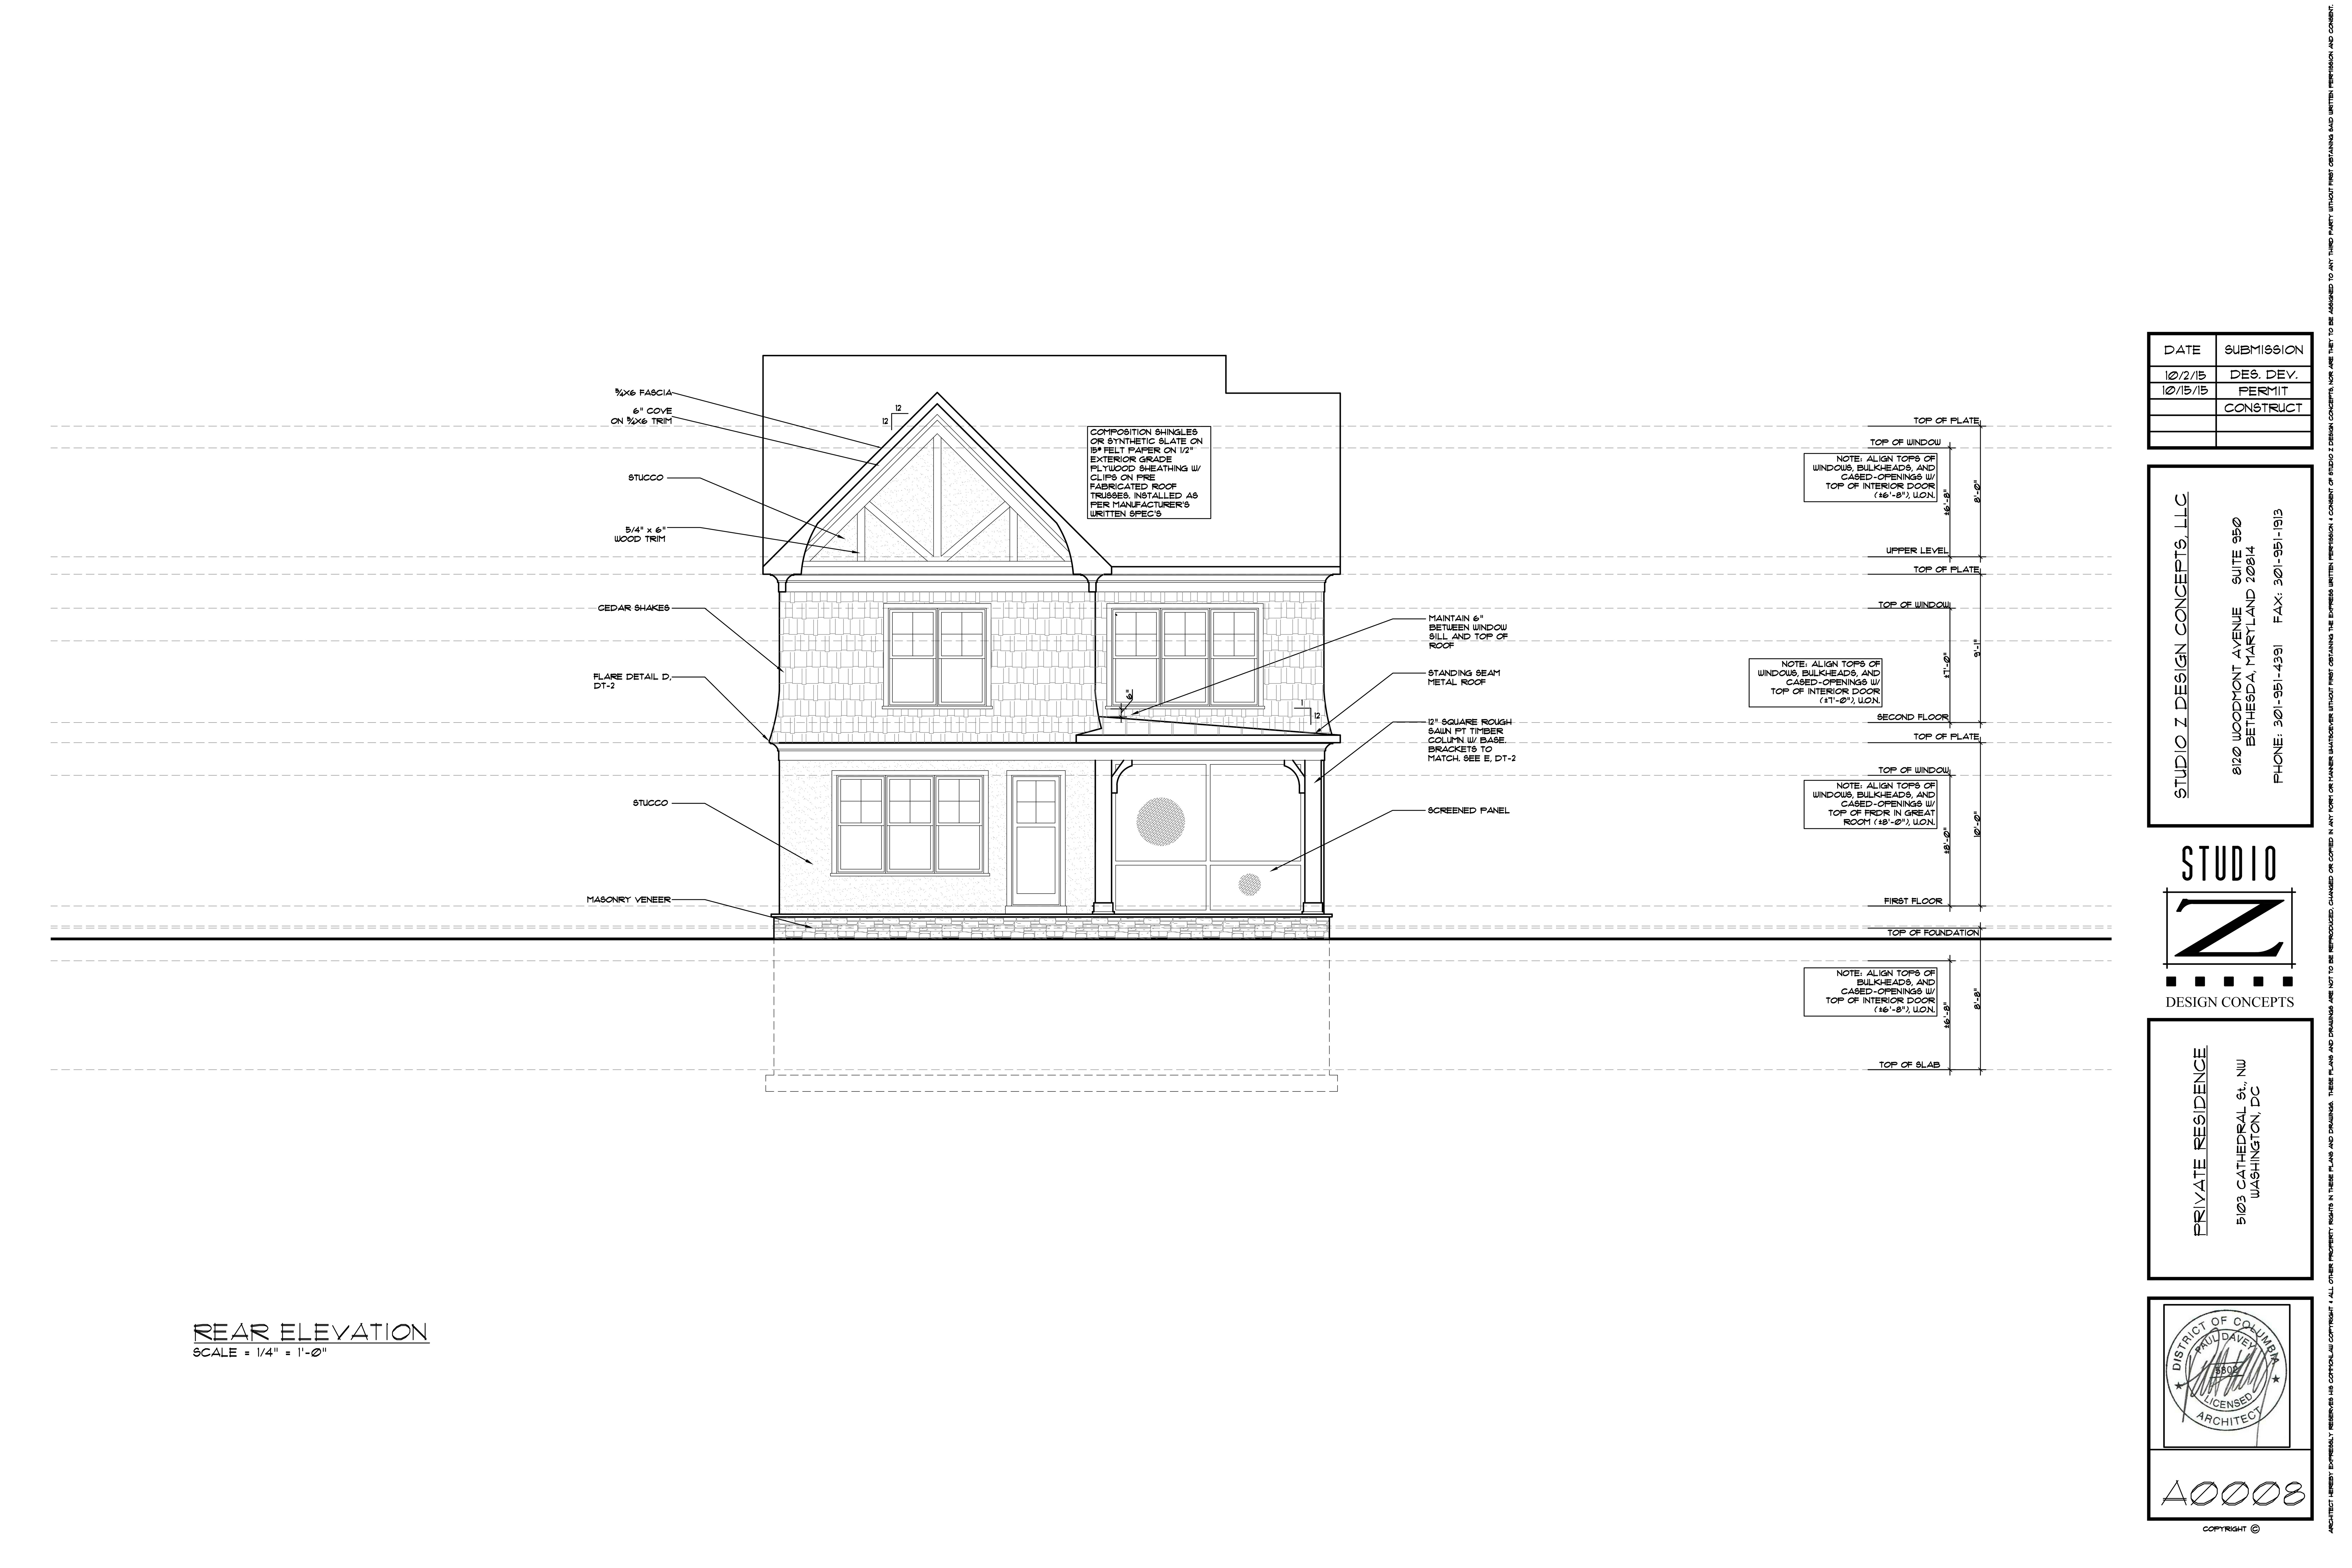 A0008_REAR ELEVATION_1